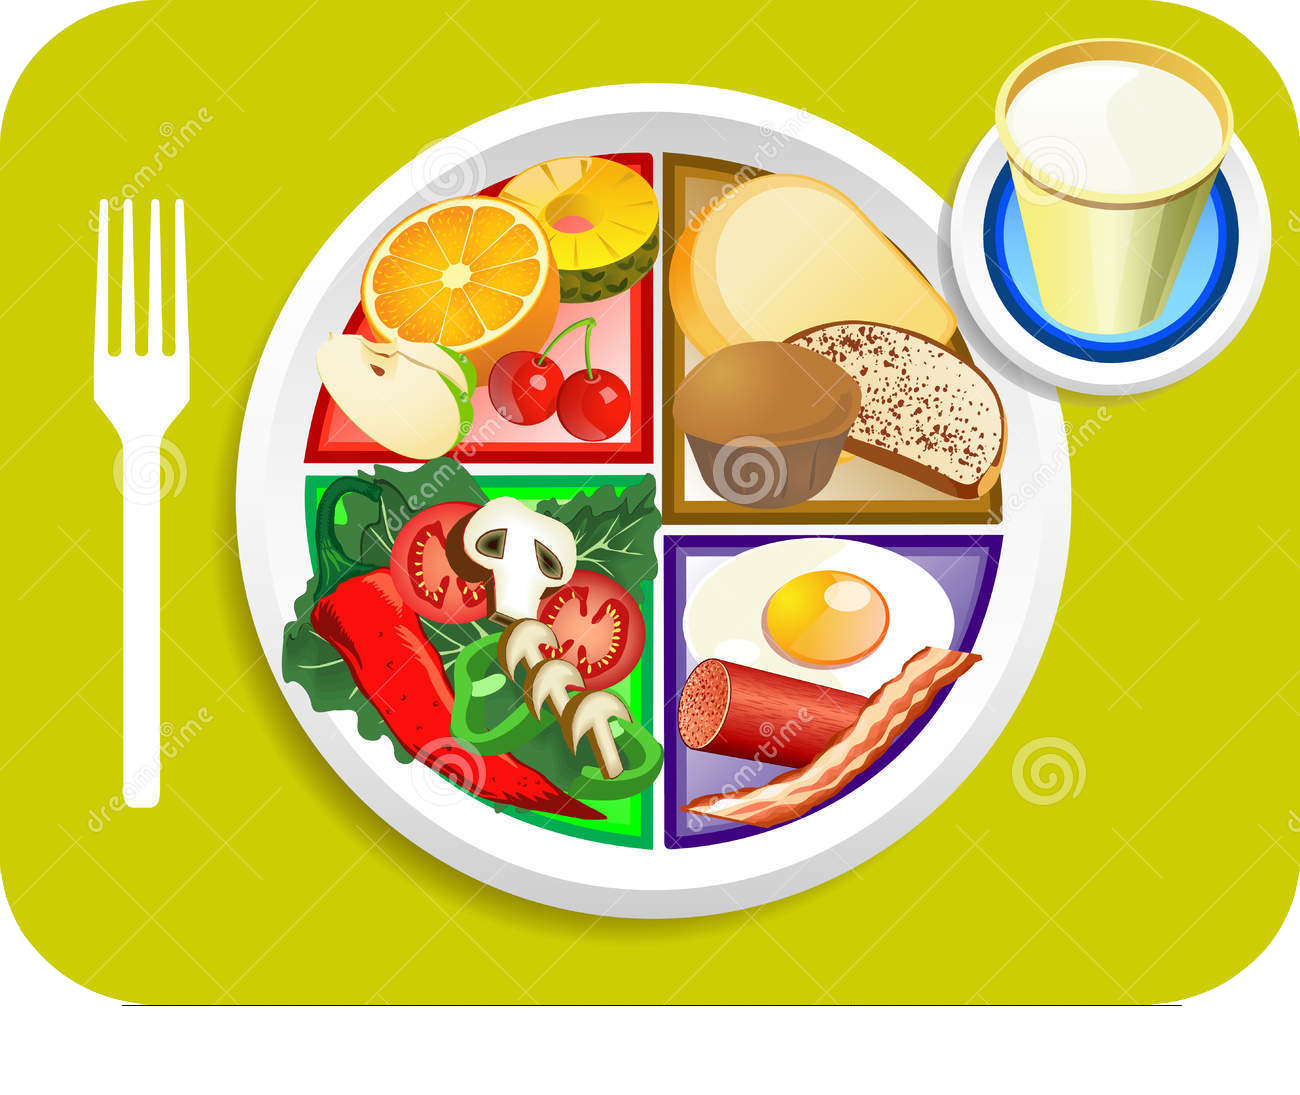 Healthy eating for the. Meal clipart myplate